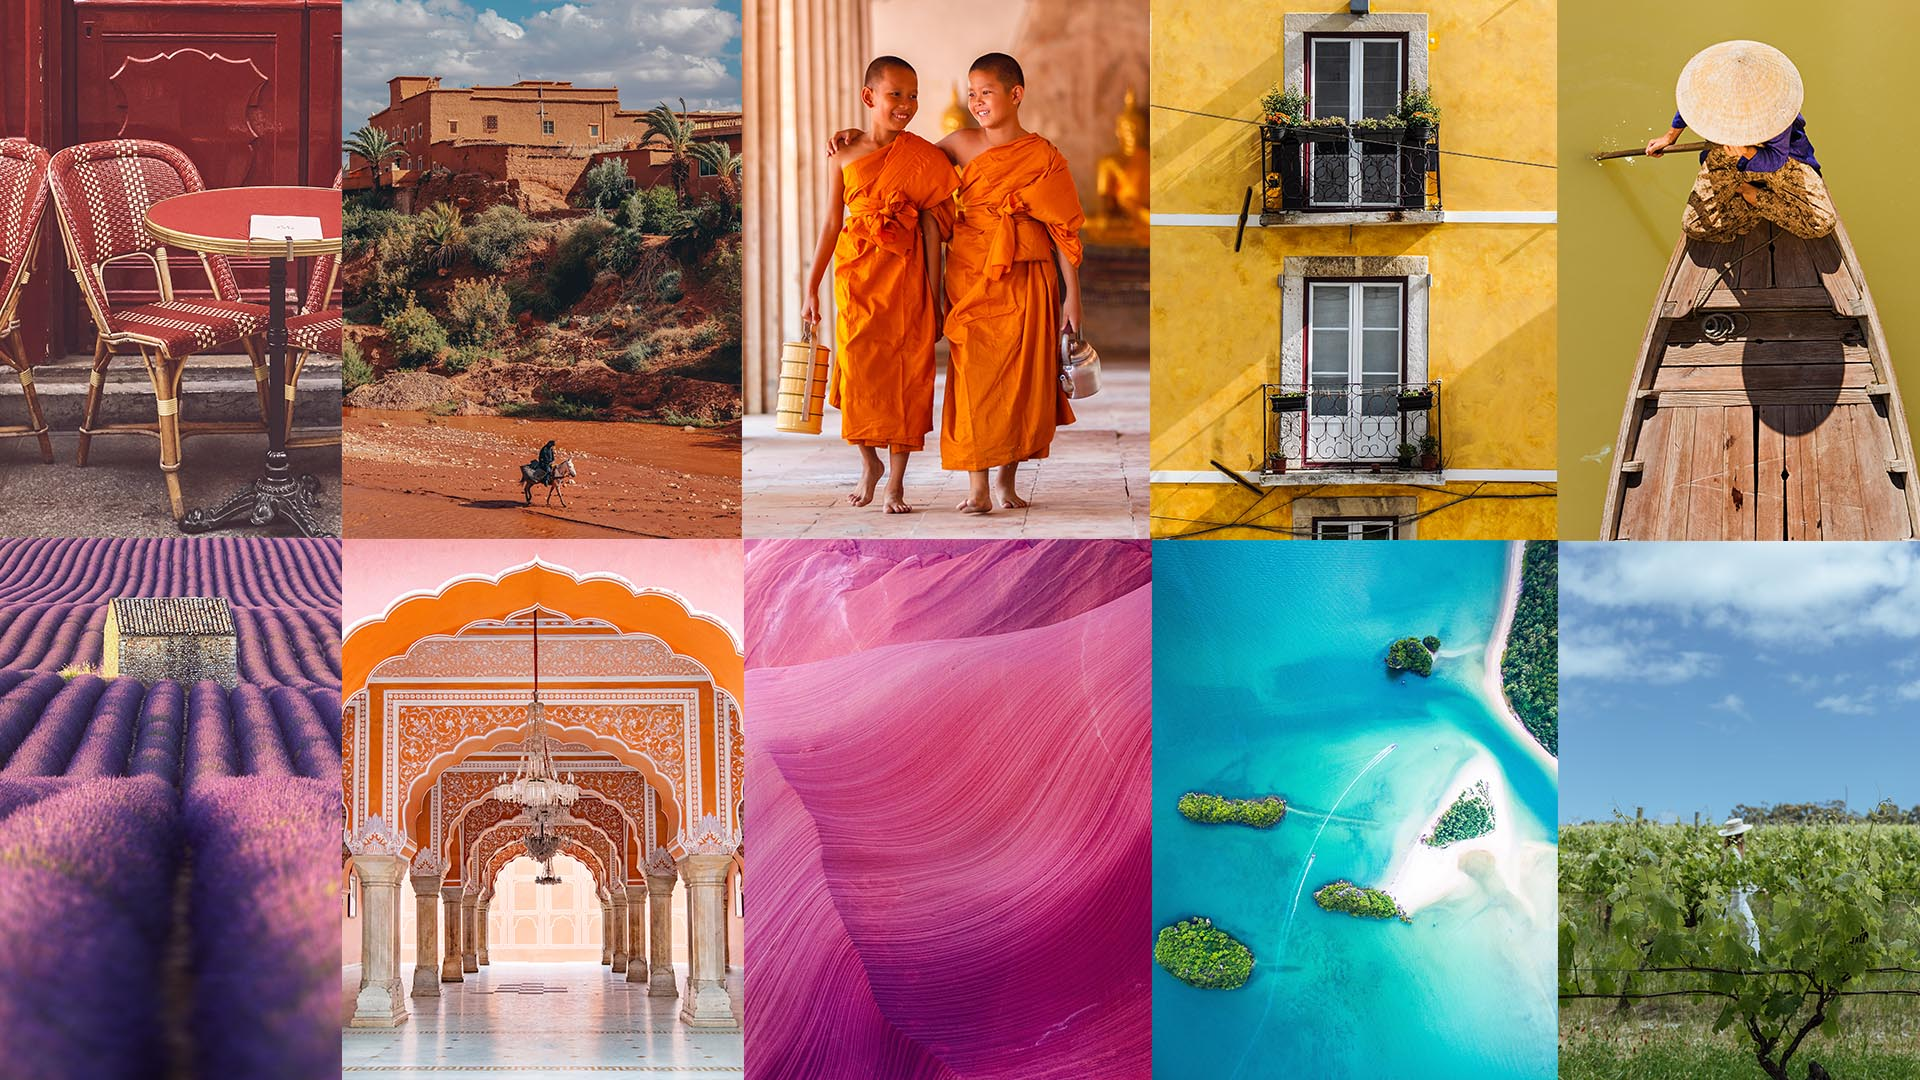 Travel by colour: a rainbow journey around the world